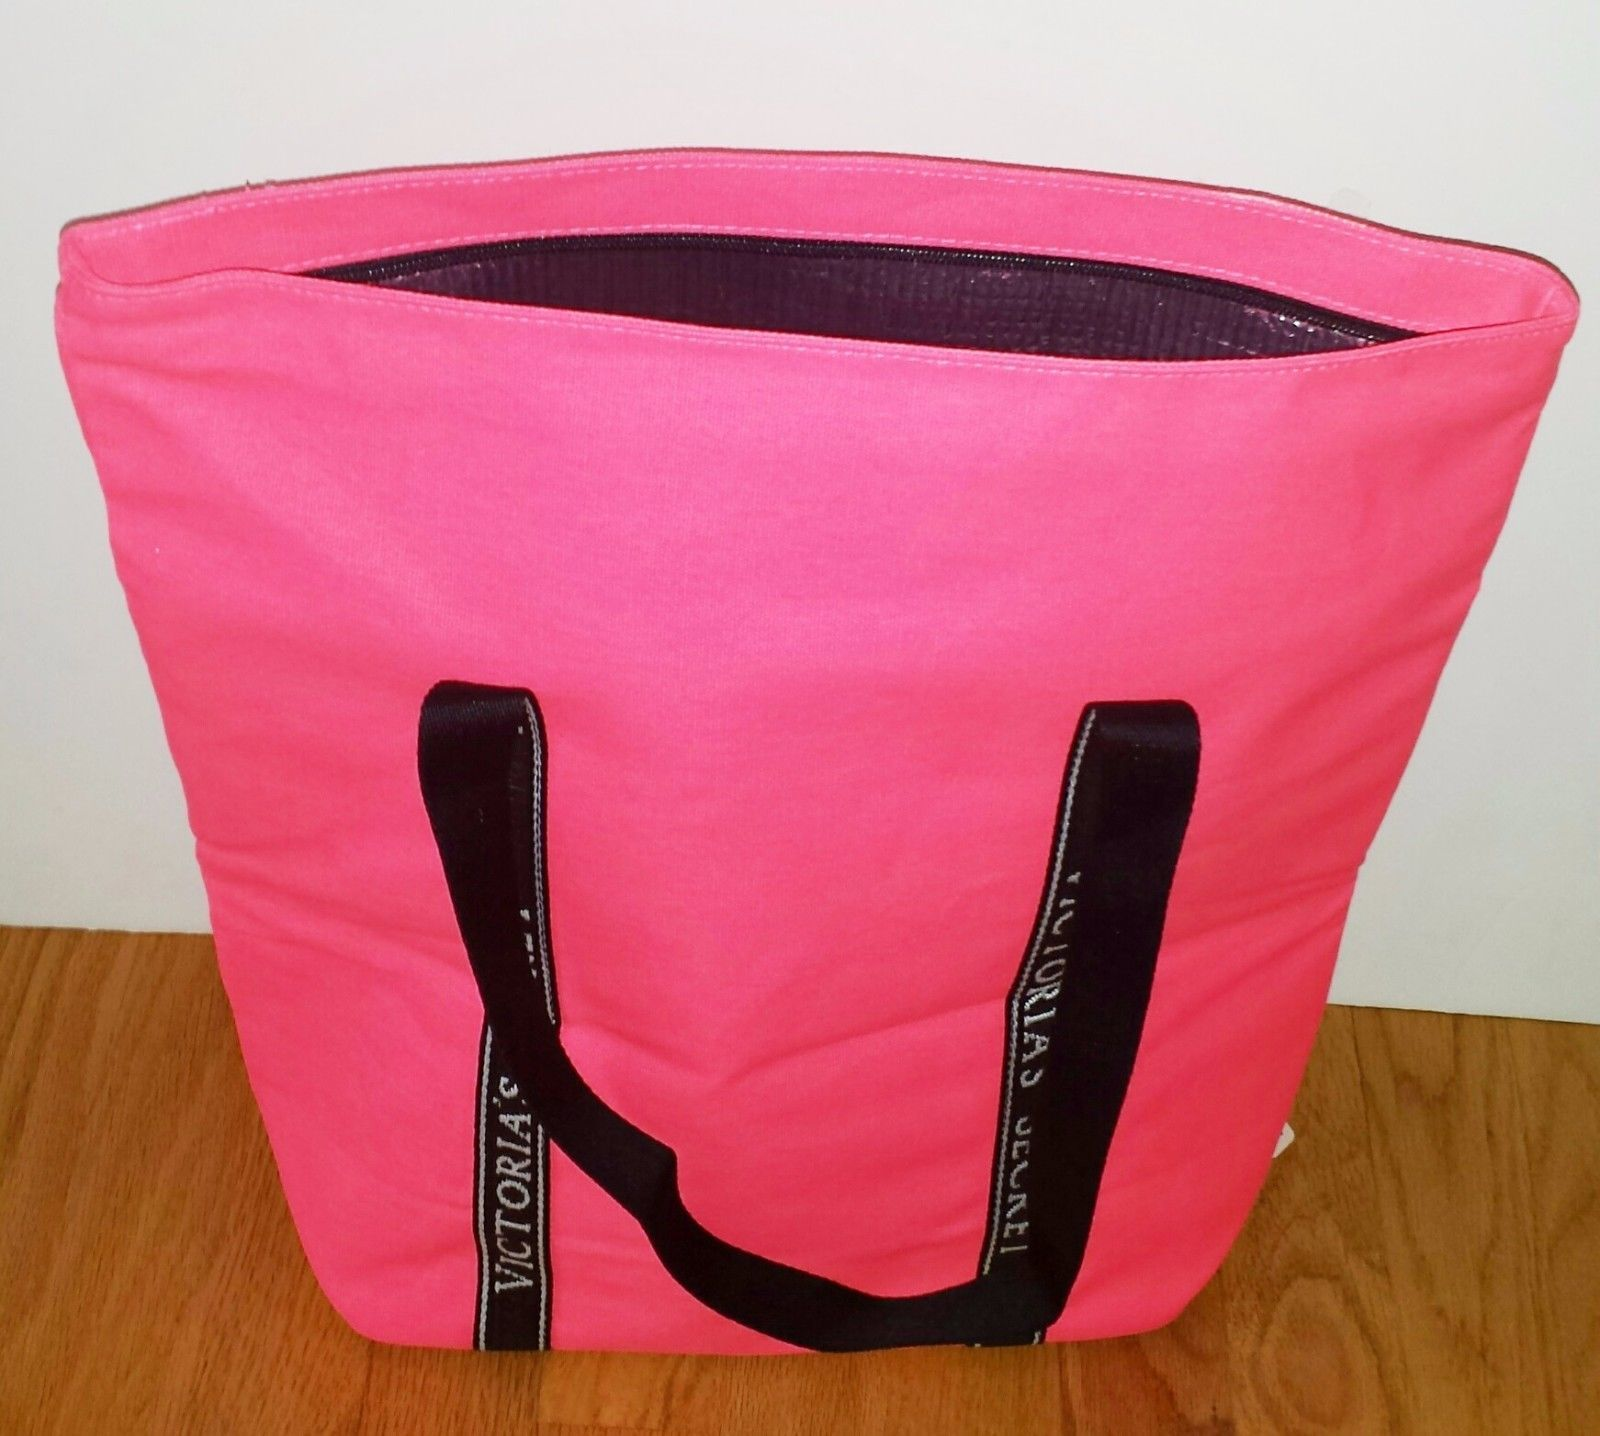 NEW Victoria's Secret Pink Insulated Cooler for Beach or Tailgating.